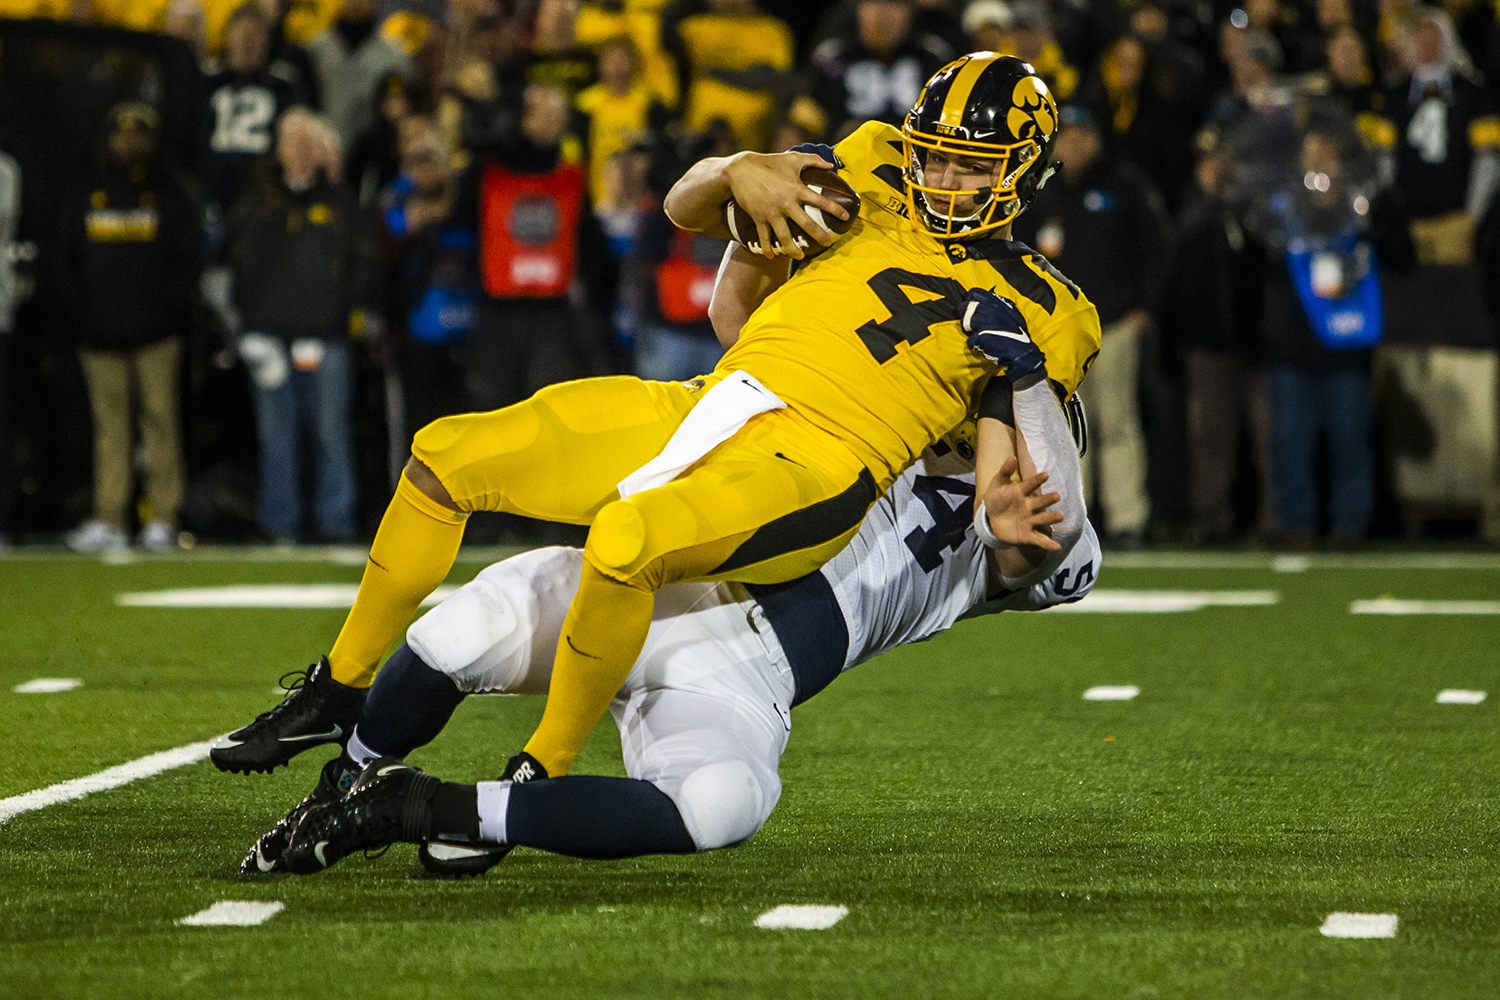 Iowa quarterback Nate Stanley is tackled during the Iowa football game against Penn State in Iowa City on Saturday, Oct. 12, 2019. The Nittany Lions defeated the Hawkeyes 17-12. (Katina Zentz/The Daily Iowan)